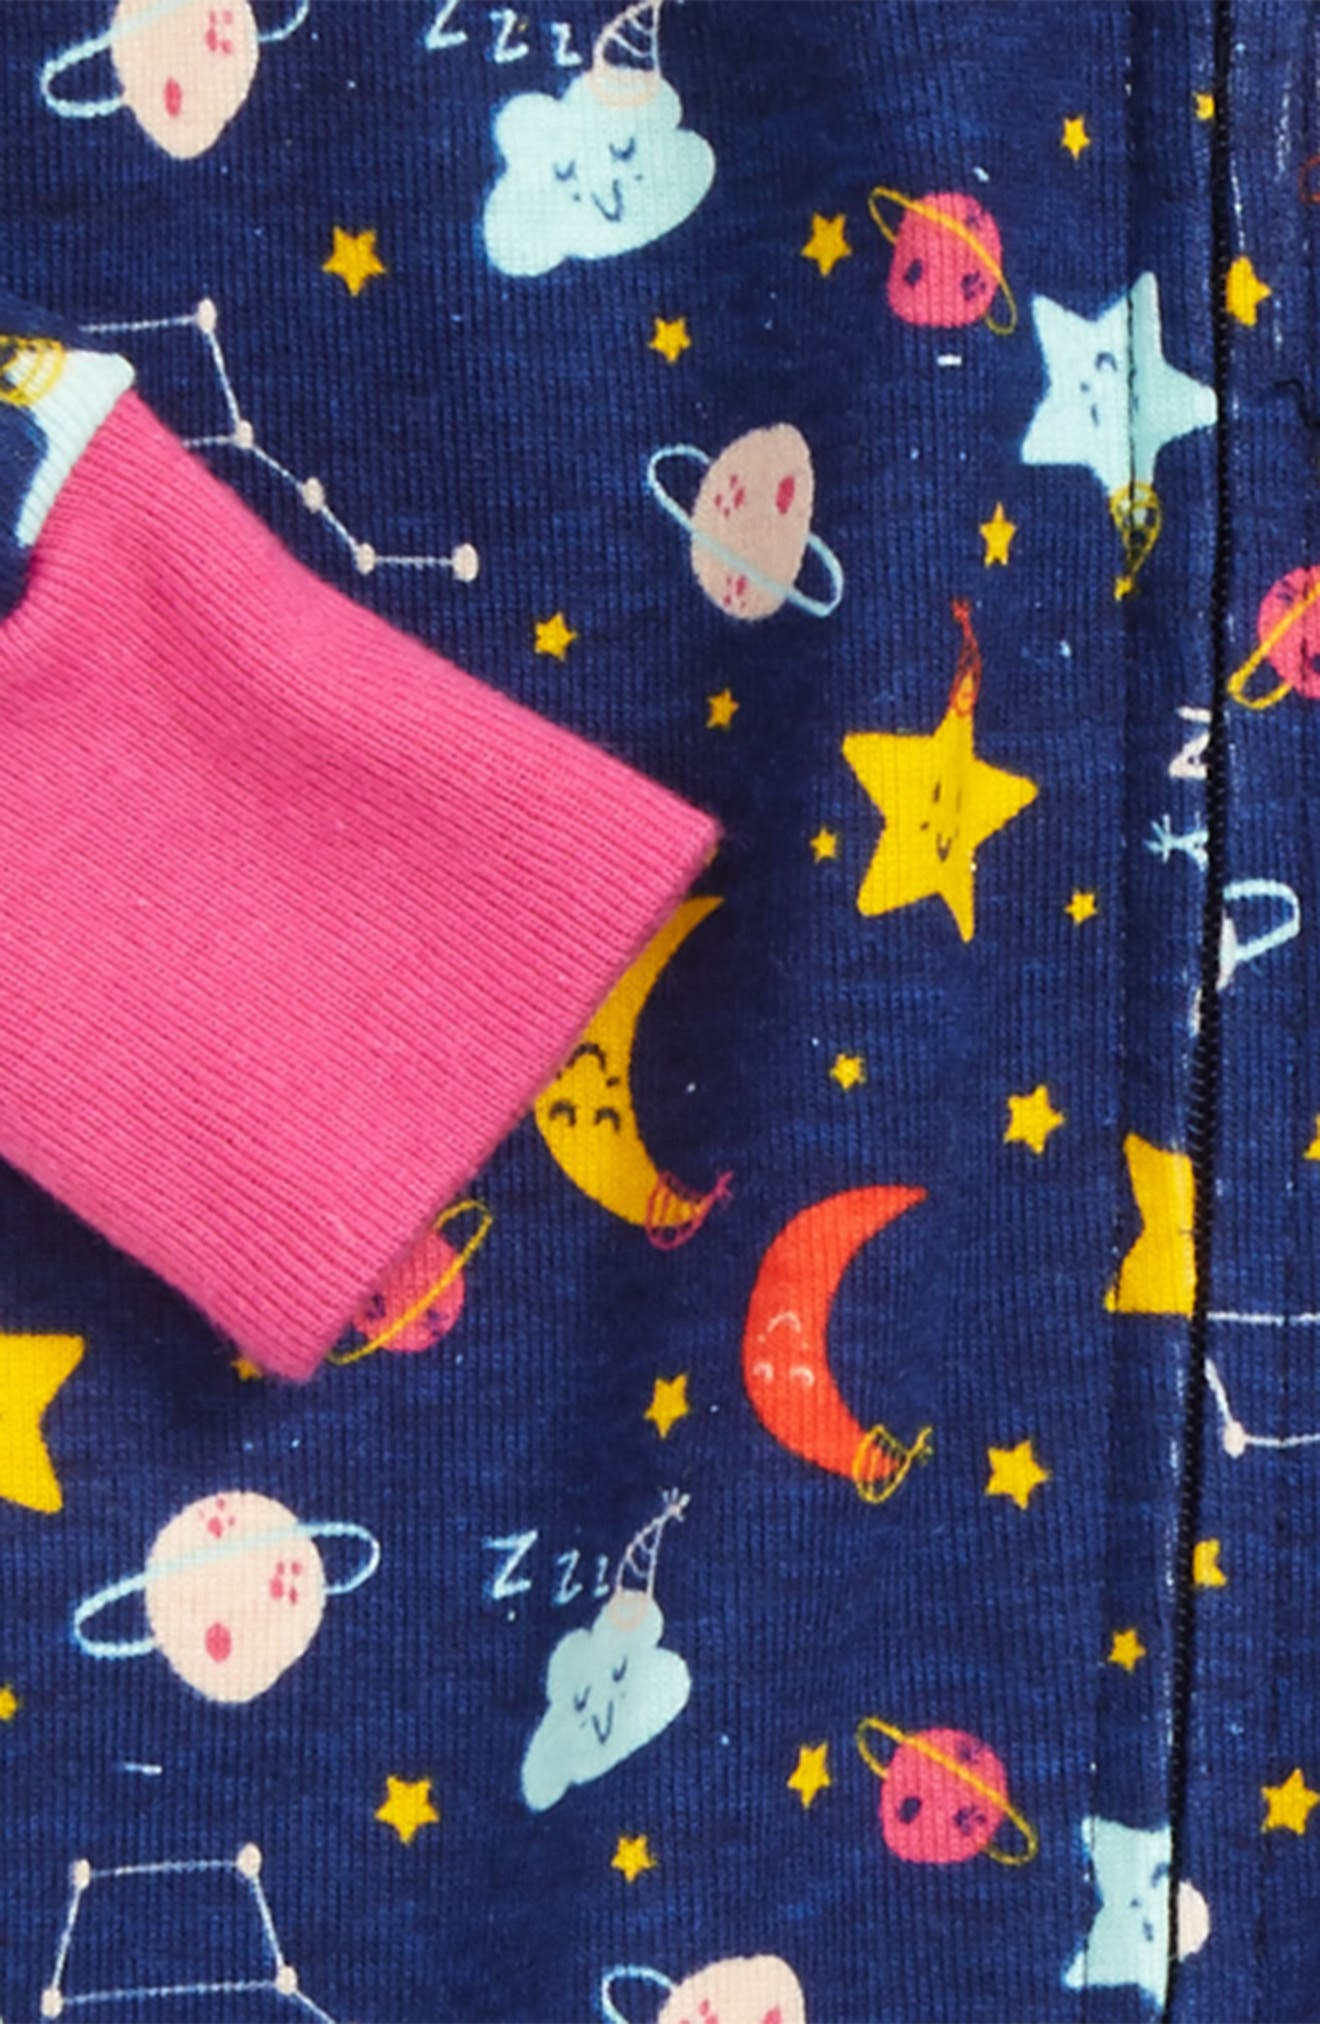 Galaxy Fitted One-Piece Pajamas,                             Alternate thumbnail 2, color,